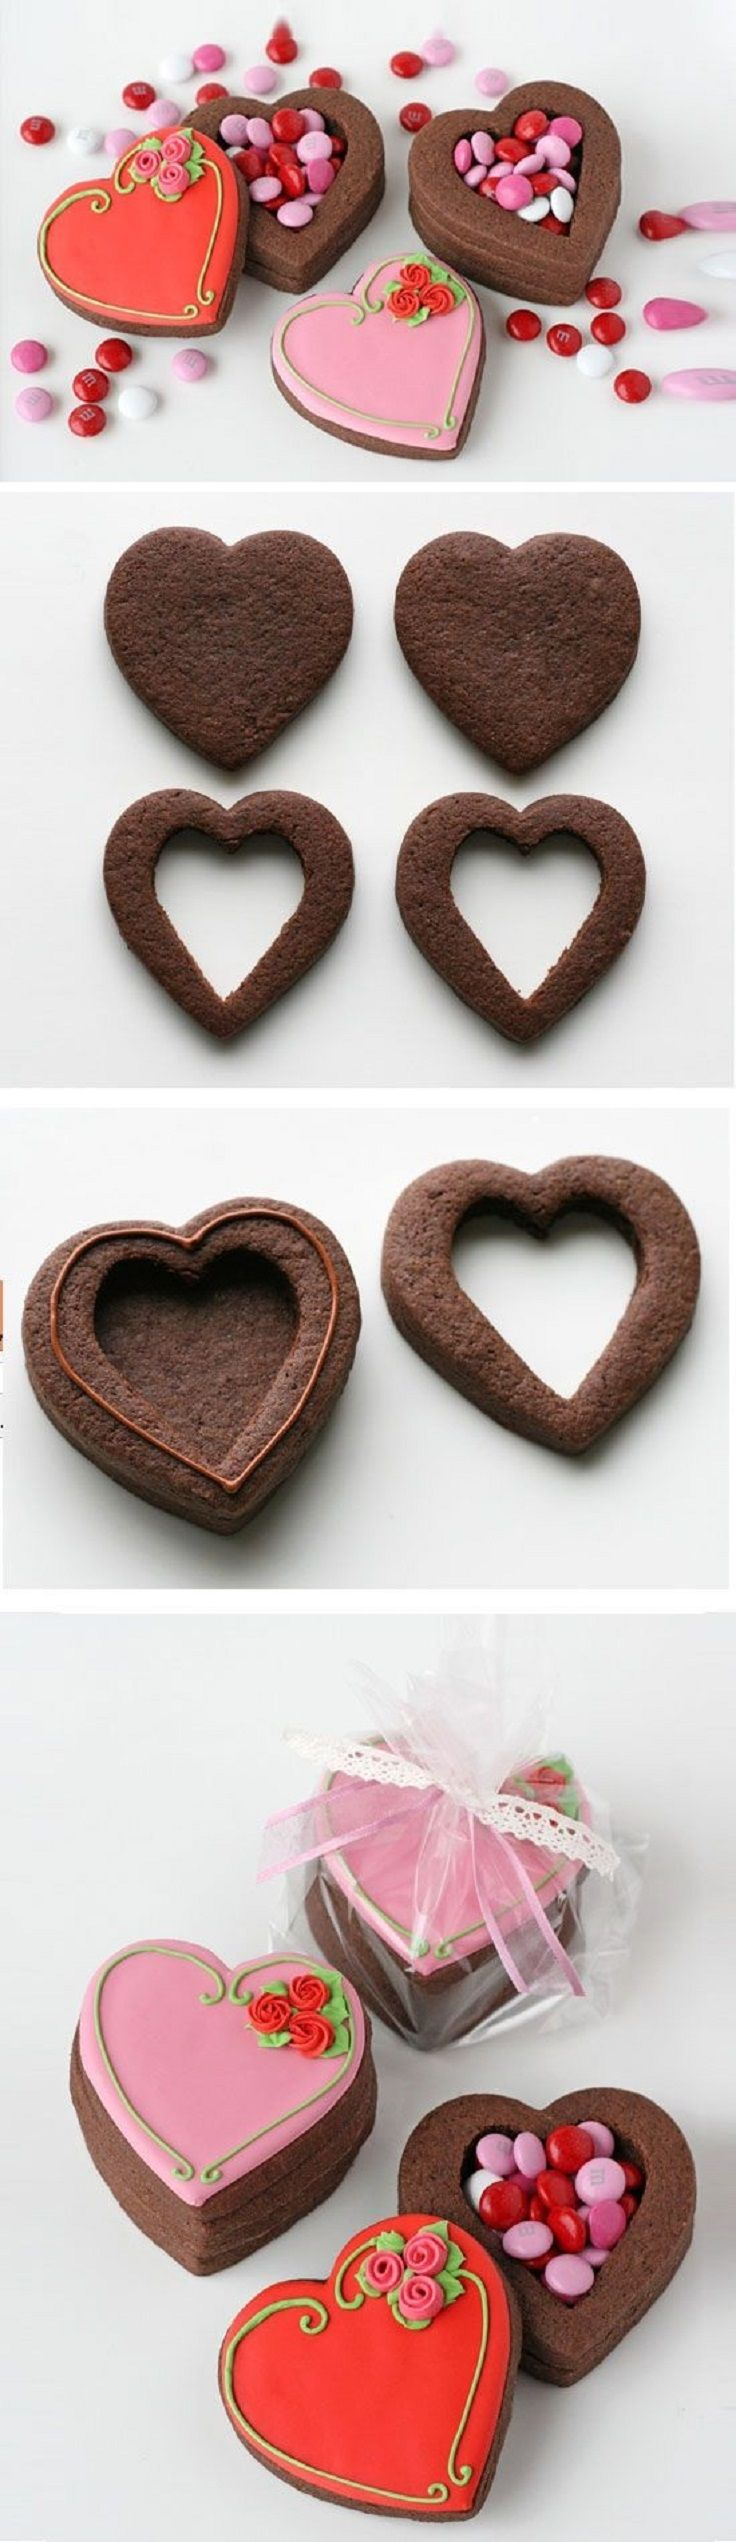 Cute Valentine's Heart Cookie Boxes - 15 Special Valentine's Day Party Ideas to Celebrate Love with Your Loved Ones